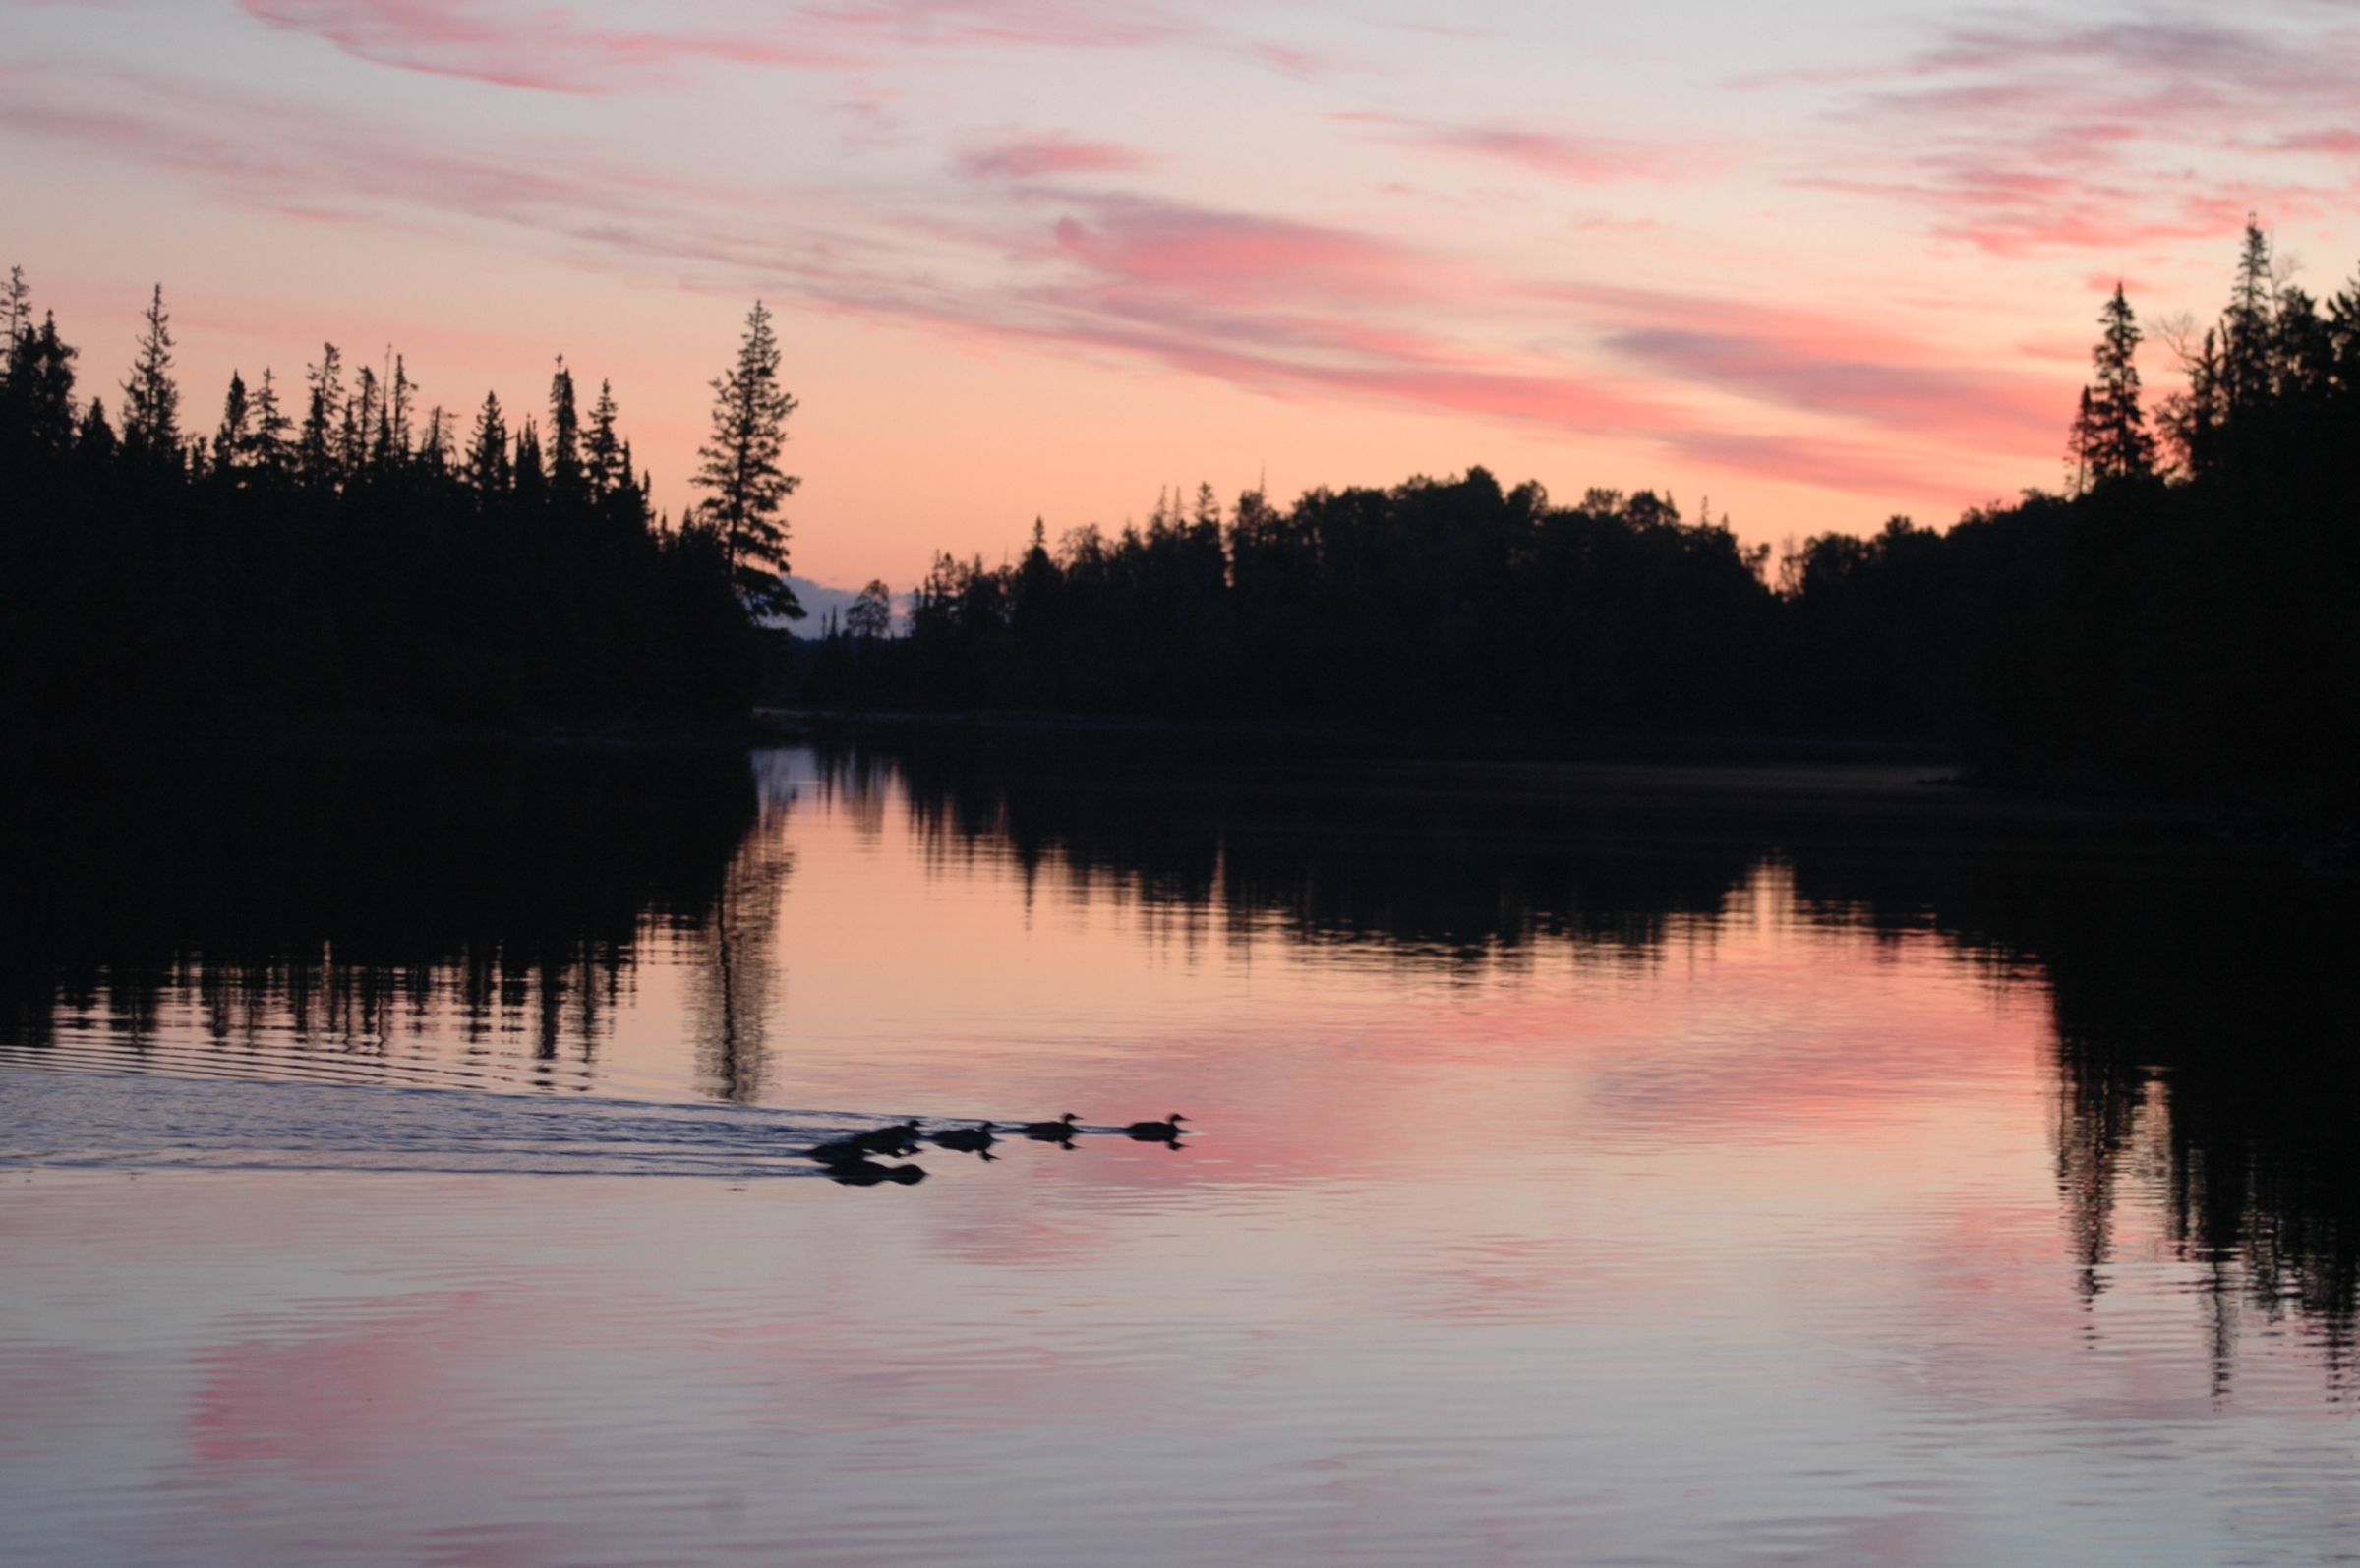 Sunset with loons